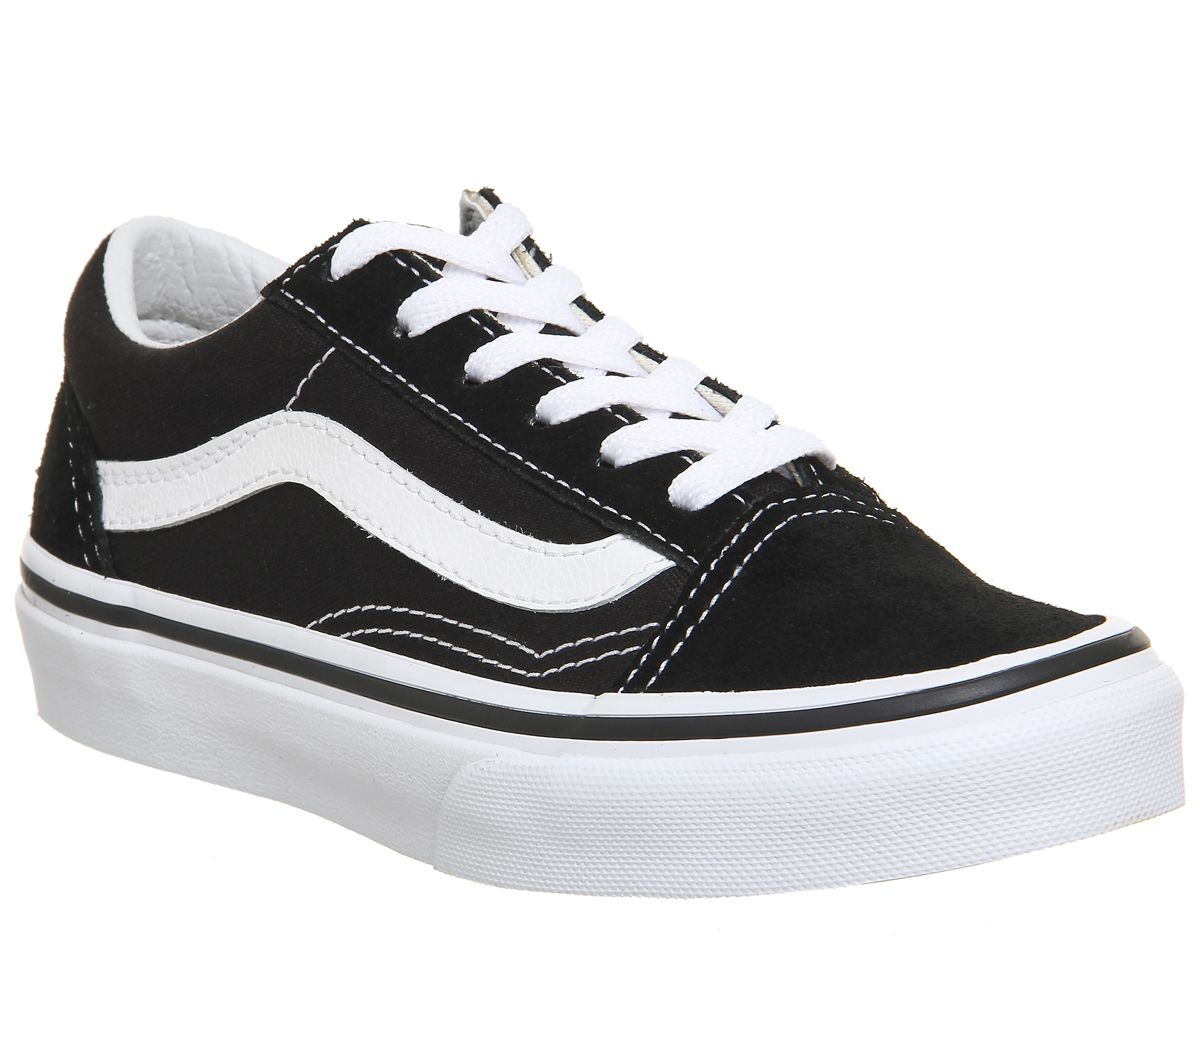 d1fcb20f8c Vans Old Skool Lace K Black True White - Unisex